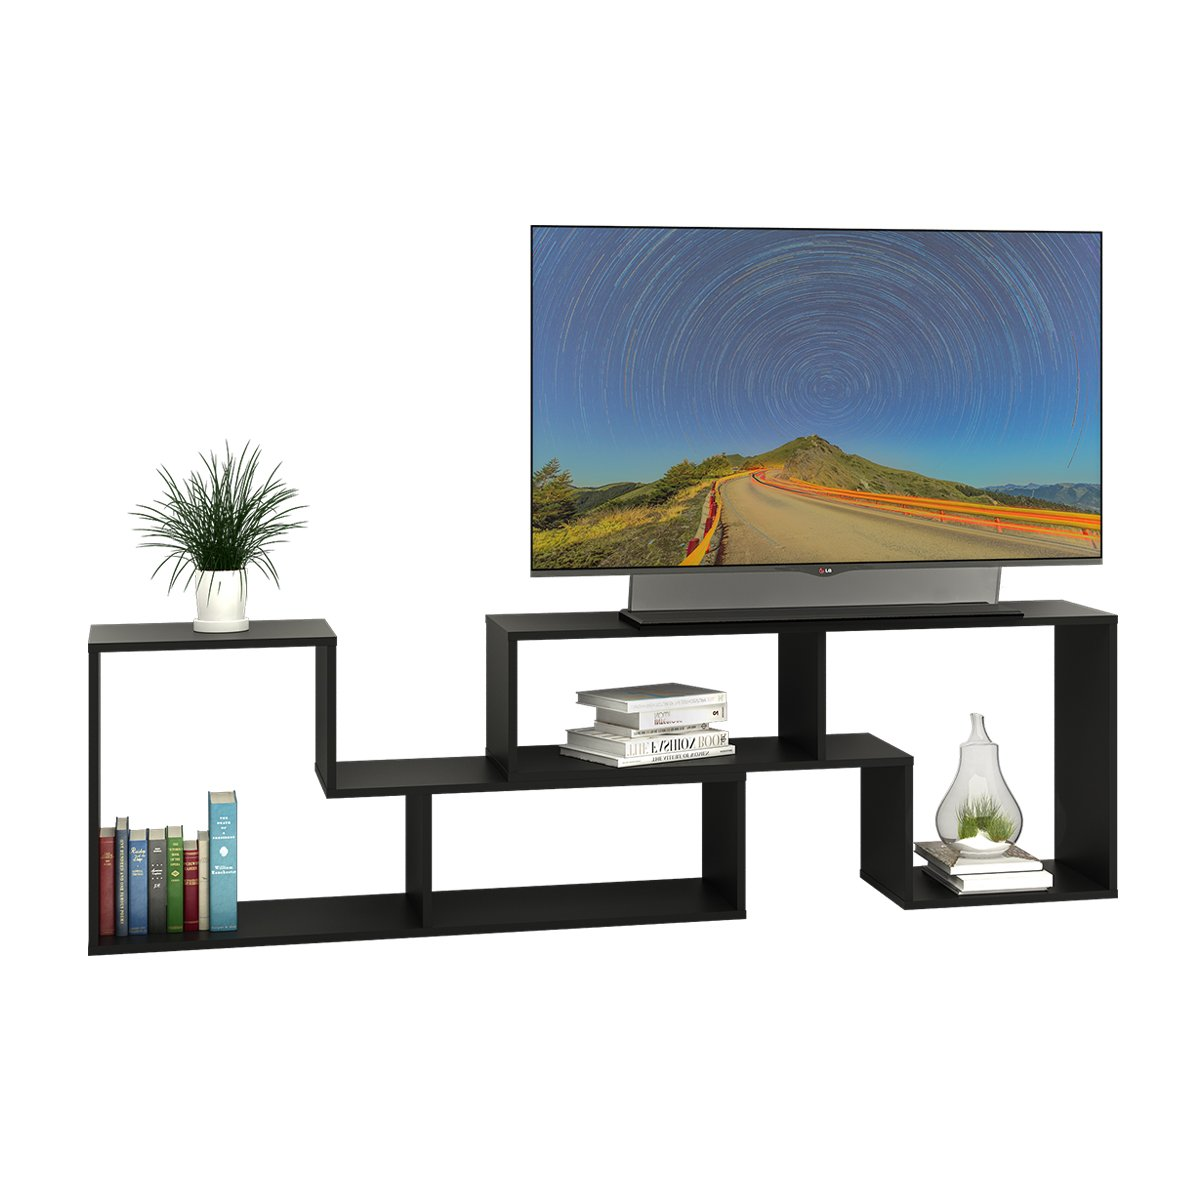 DEVAISE 3-in-1 Versatile TV Stand Bookcase Display Cabinet Black (0.6'' thickness)